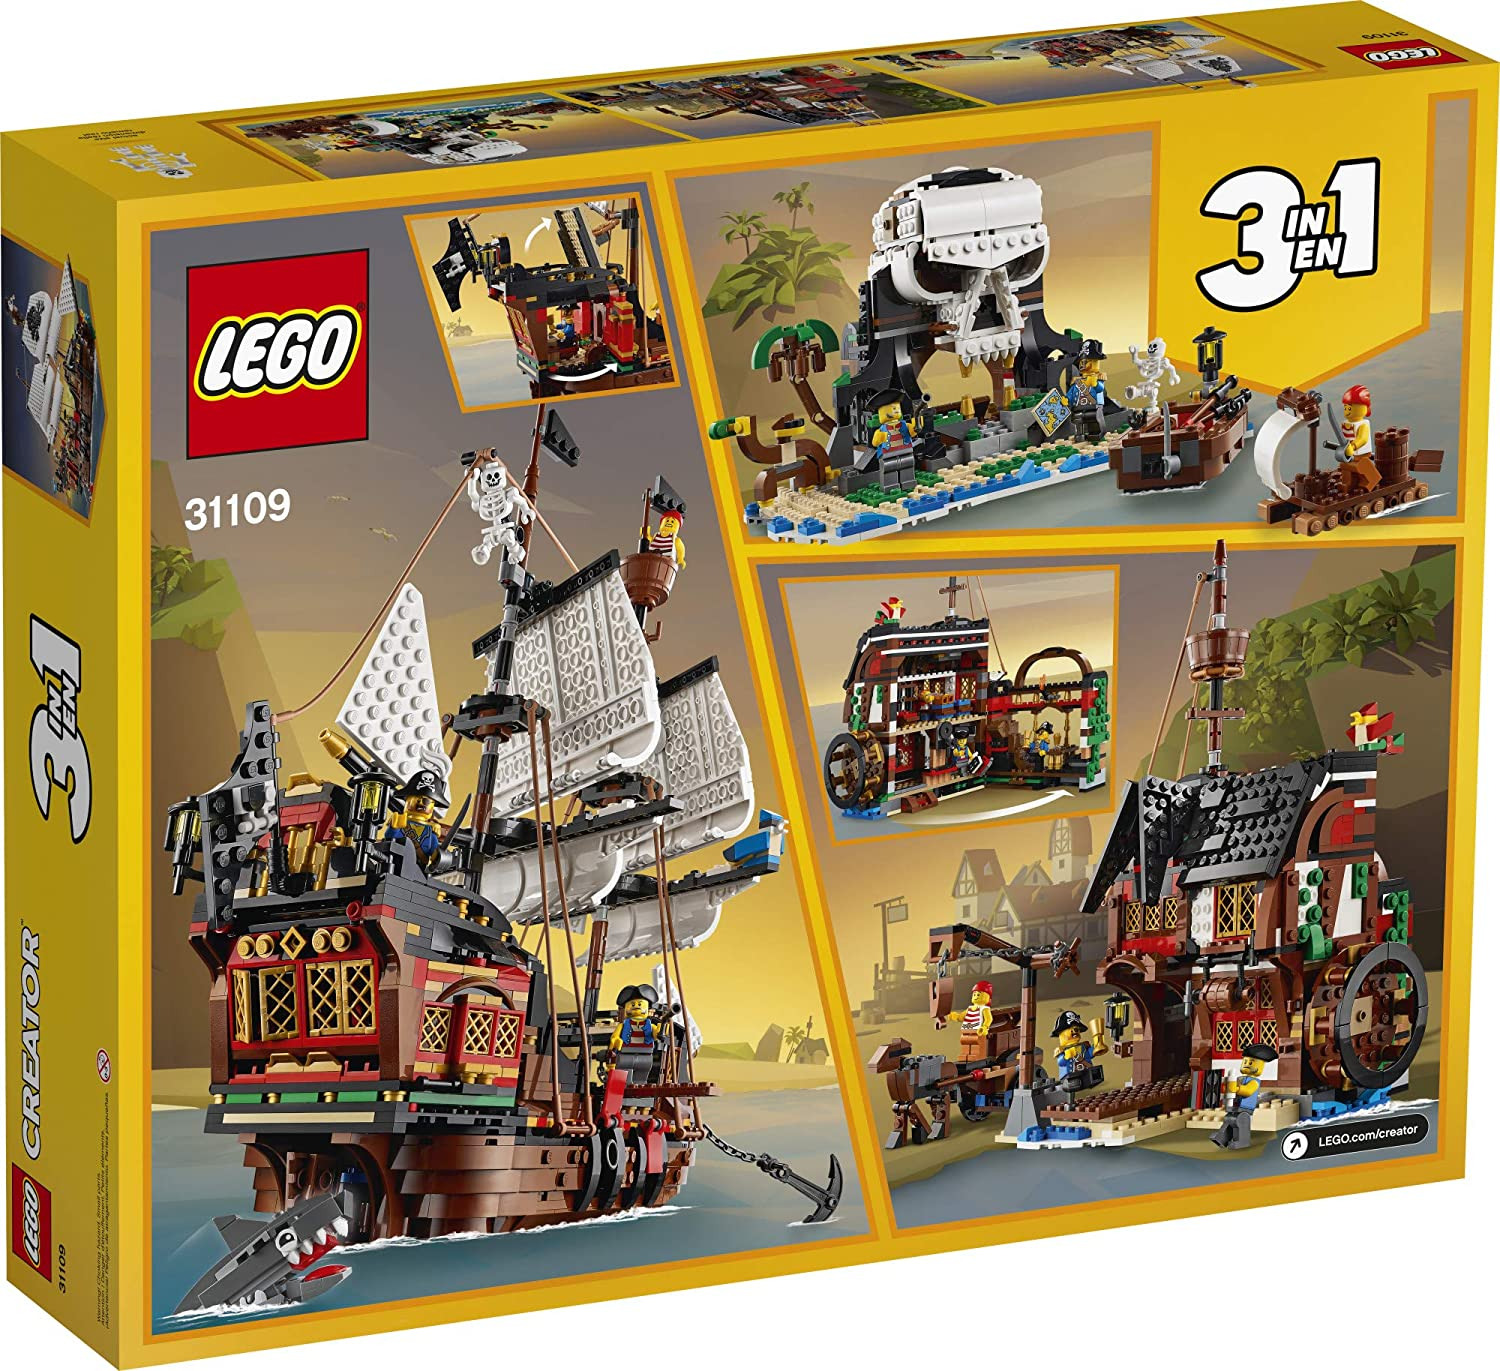 LEGO Creator 3in1 Pirate Ship 31109, New 2020 (1,260 Pieces)